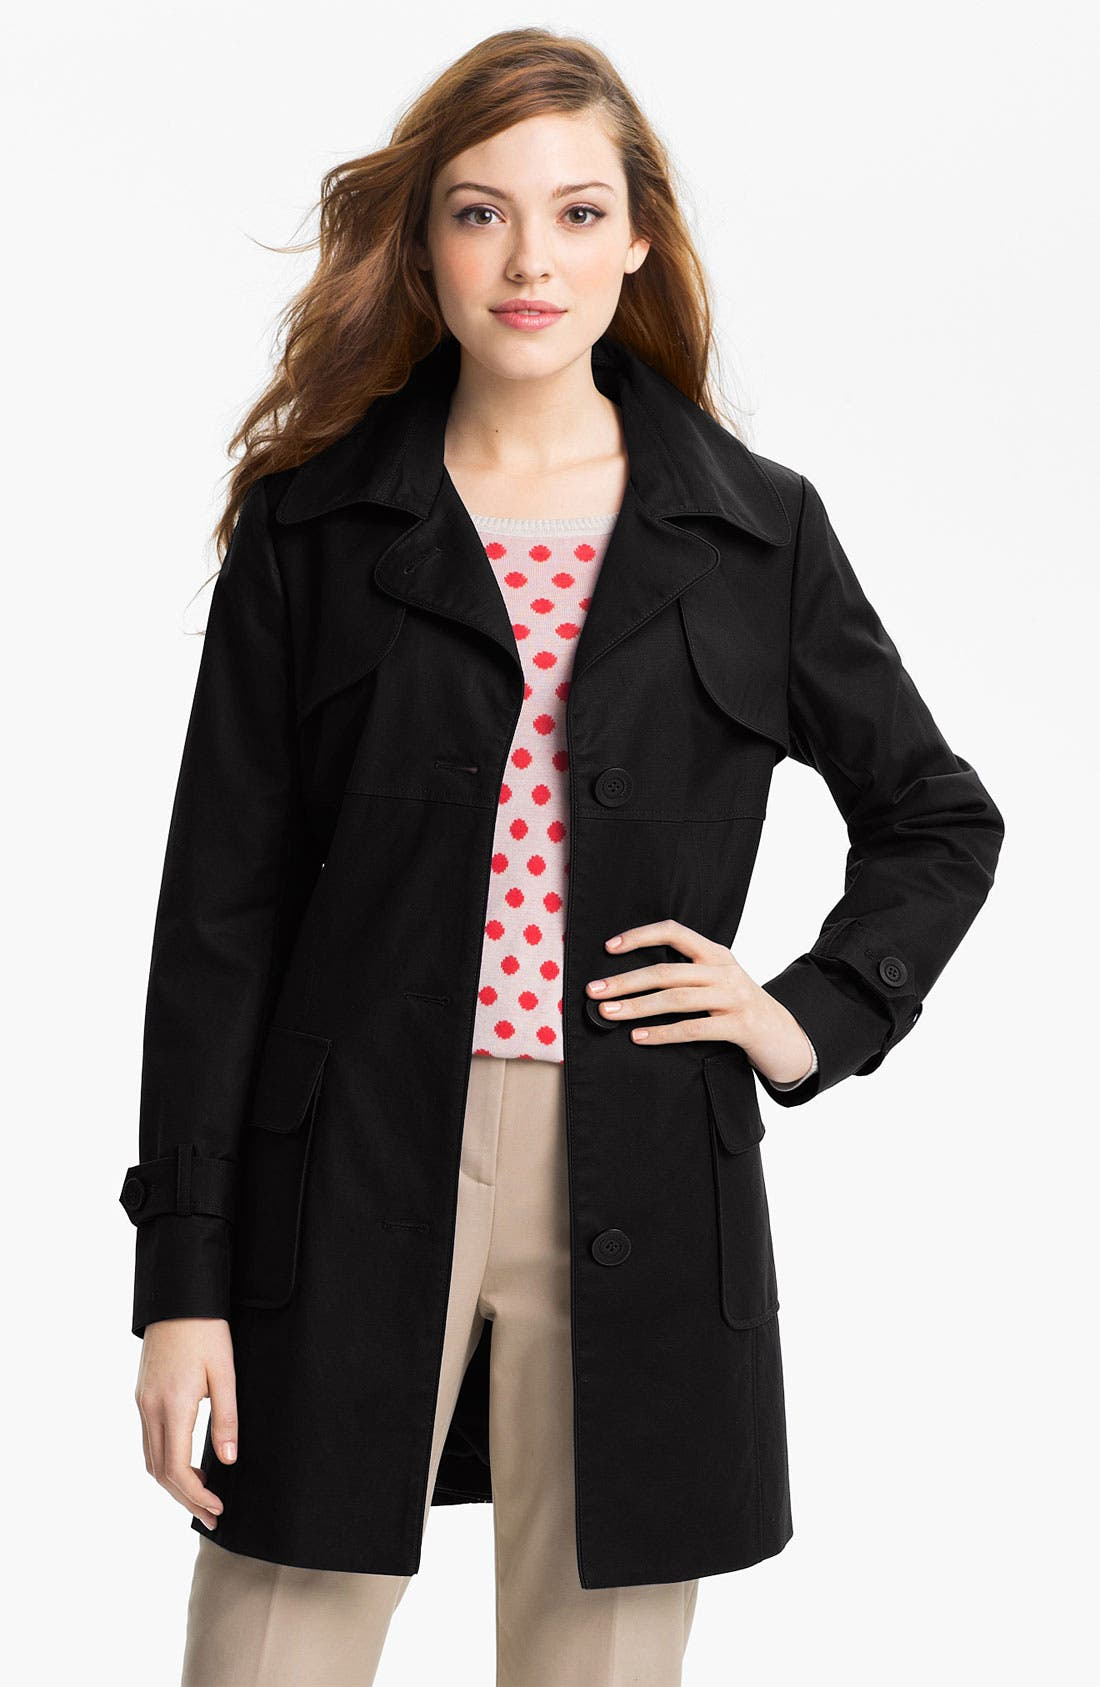 Alternate Image 1 Selected - Kristen Blake Single Breasted Trench Coat (Regular & Petite)